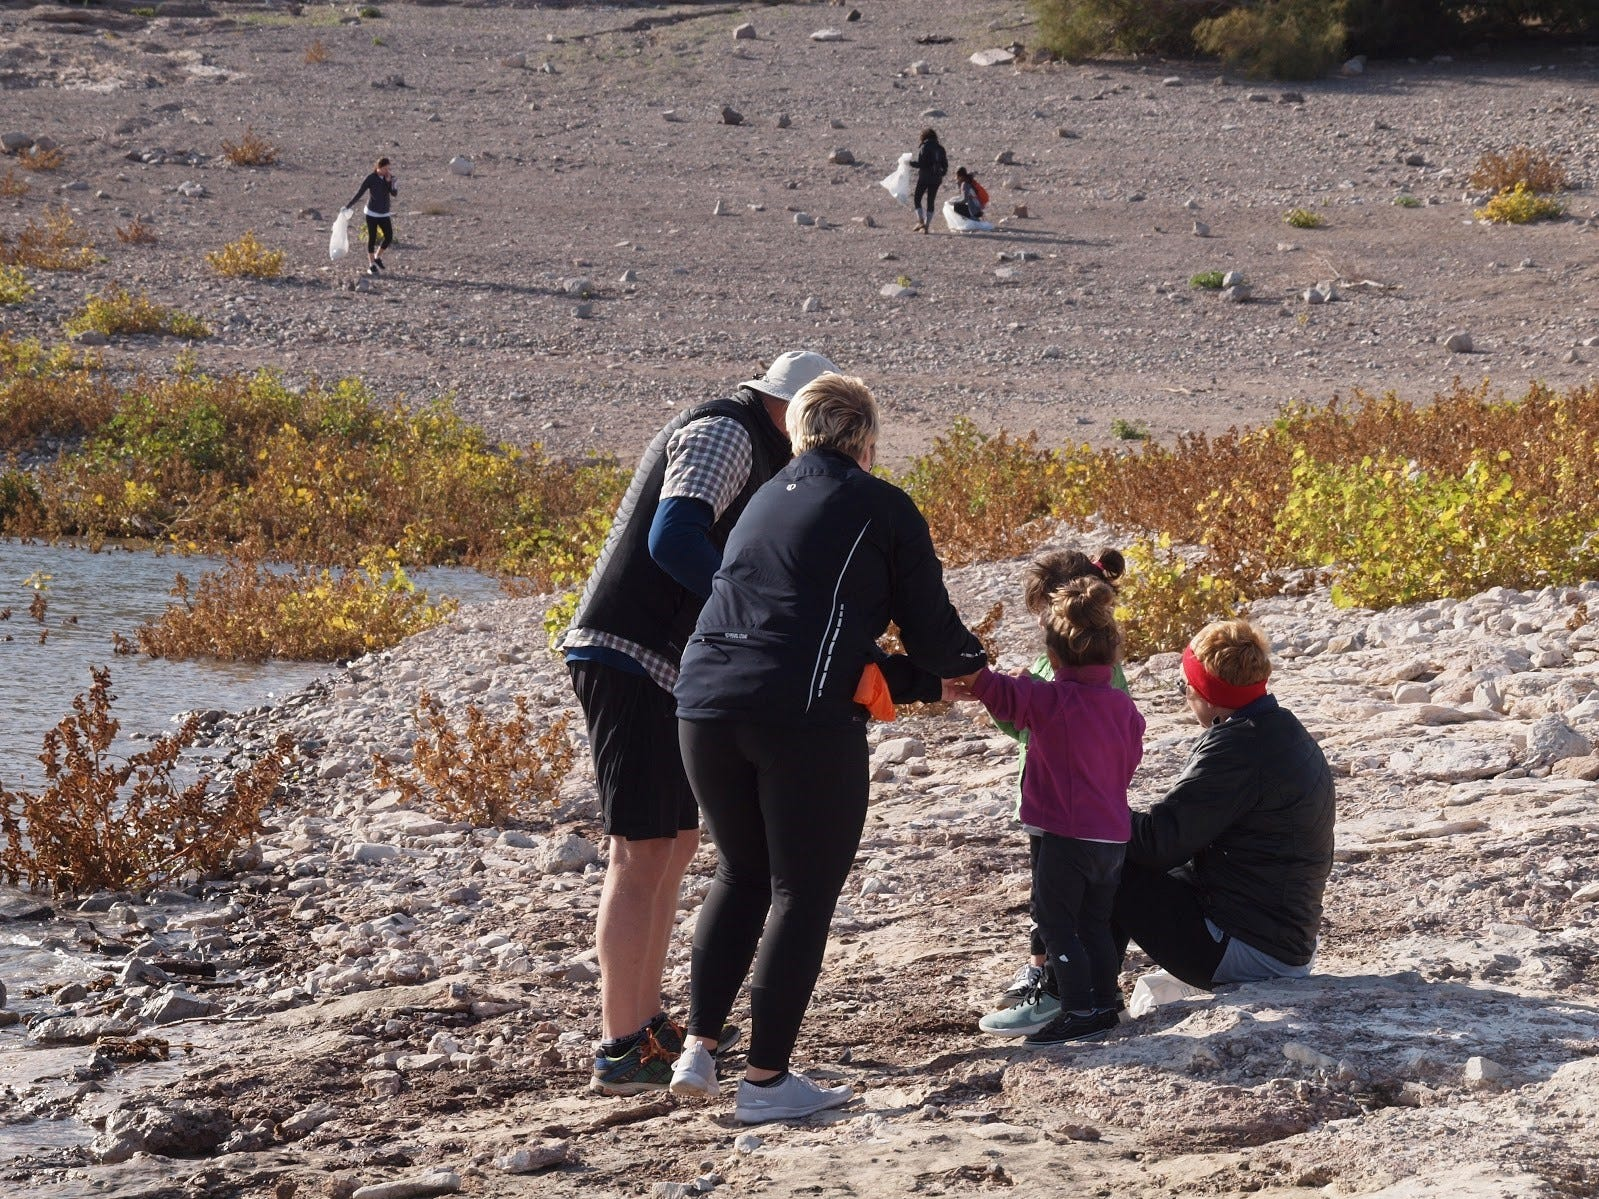 Children were a part of the cleanup effort at Lake Pleasant on Nov. 23, 2018.